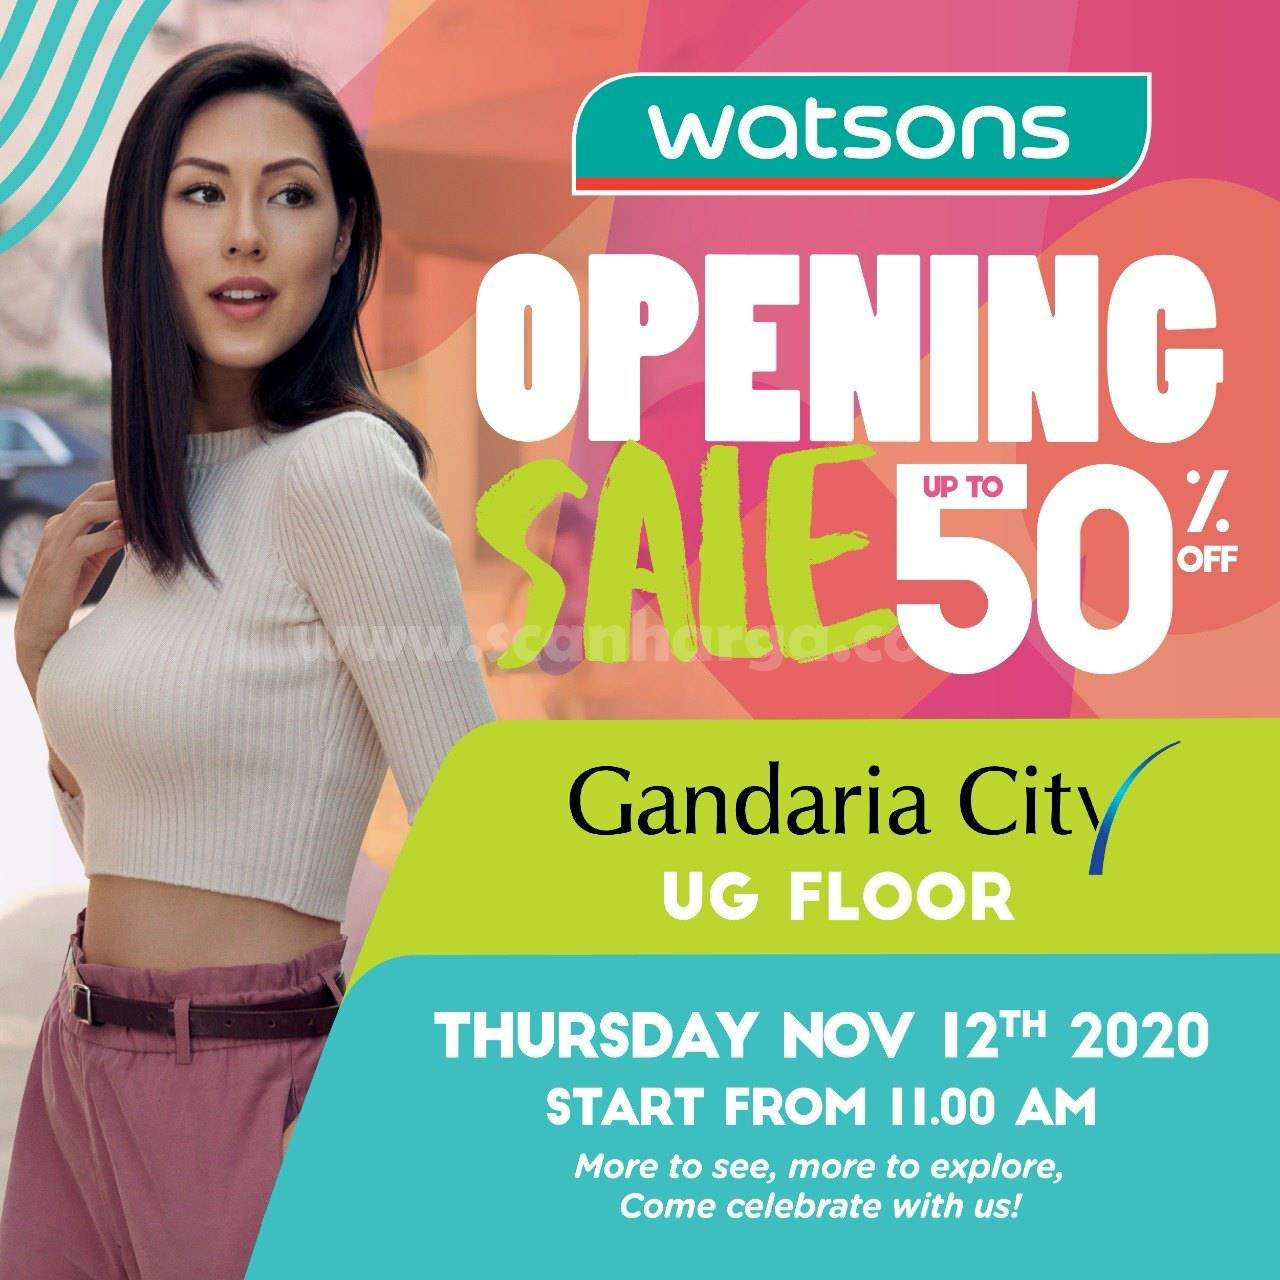 Watsons Gandaria City: Promo Opening Sale up to 50% off*